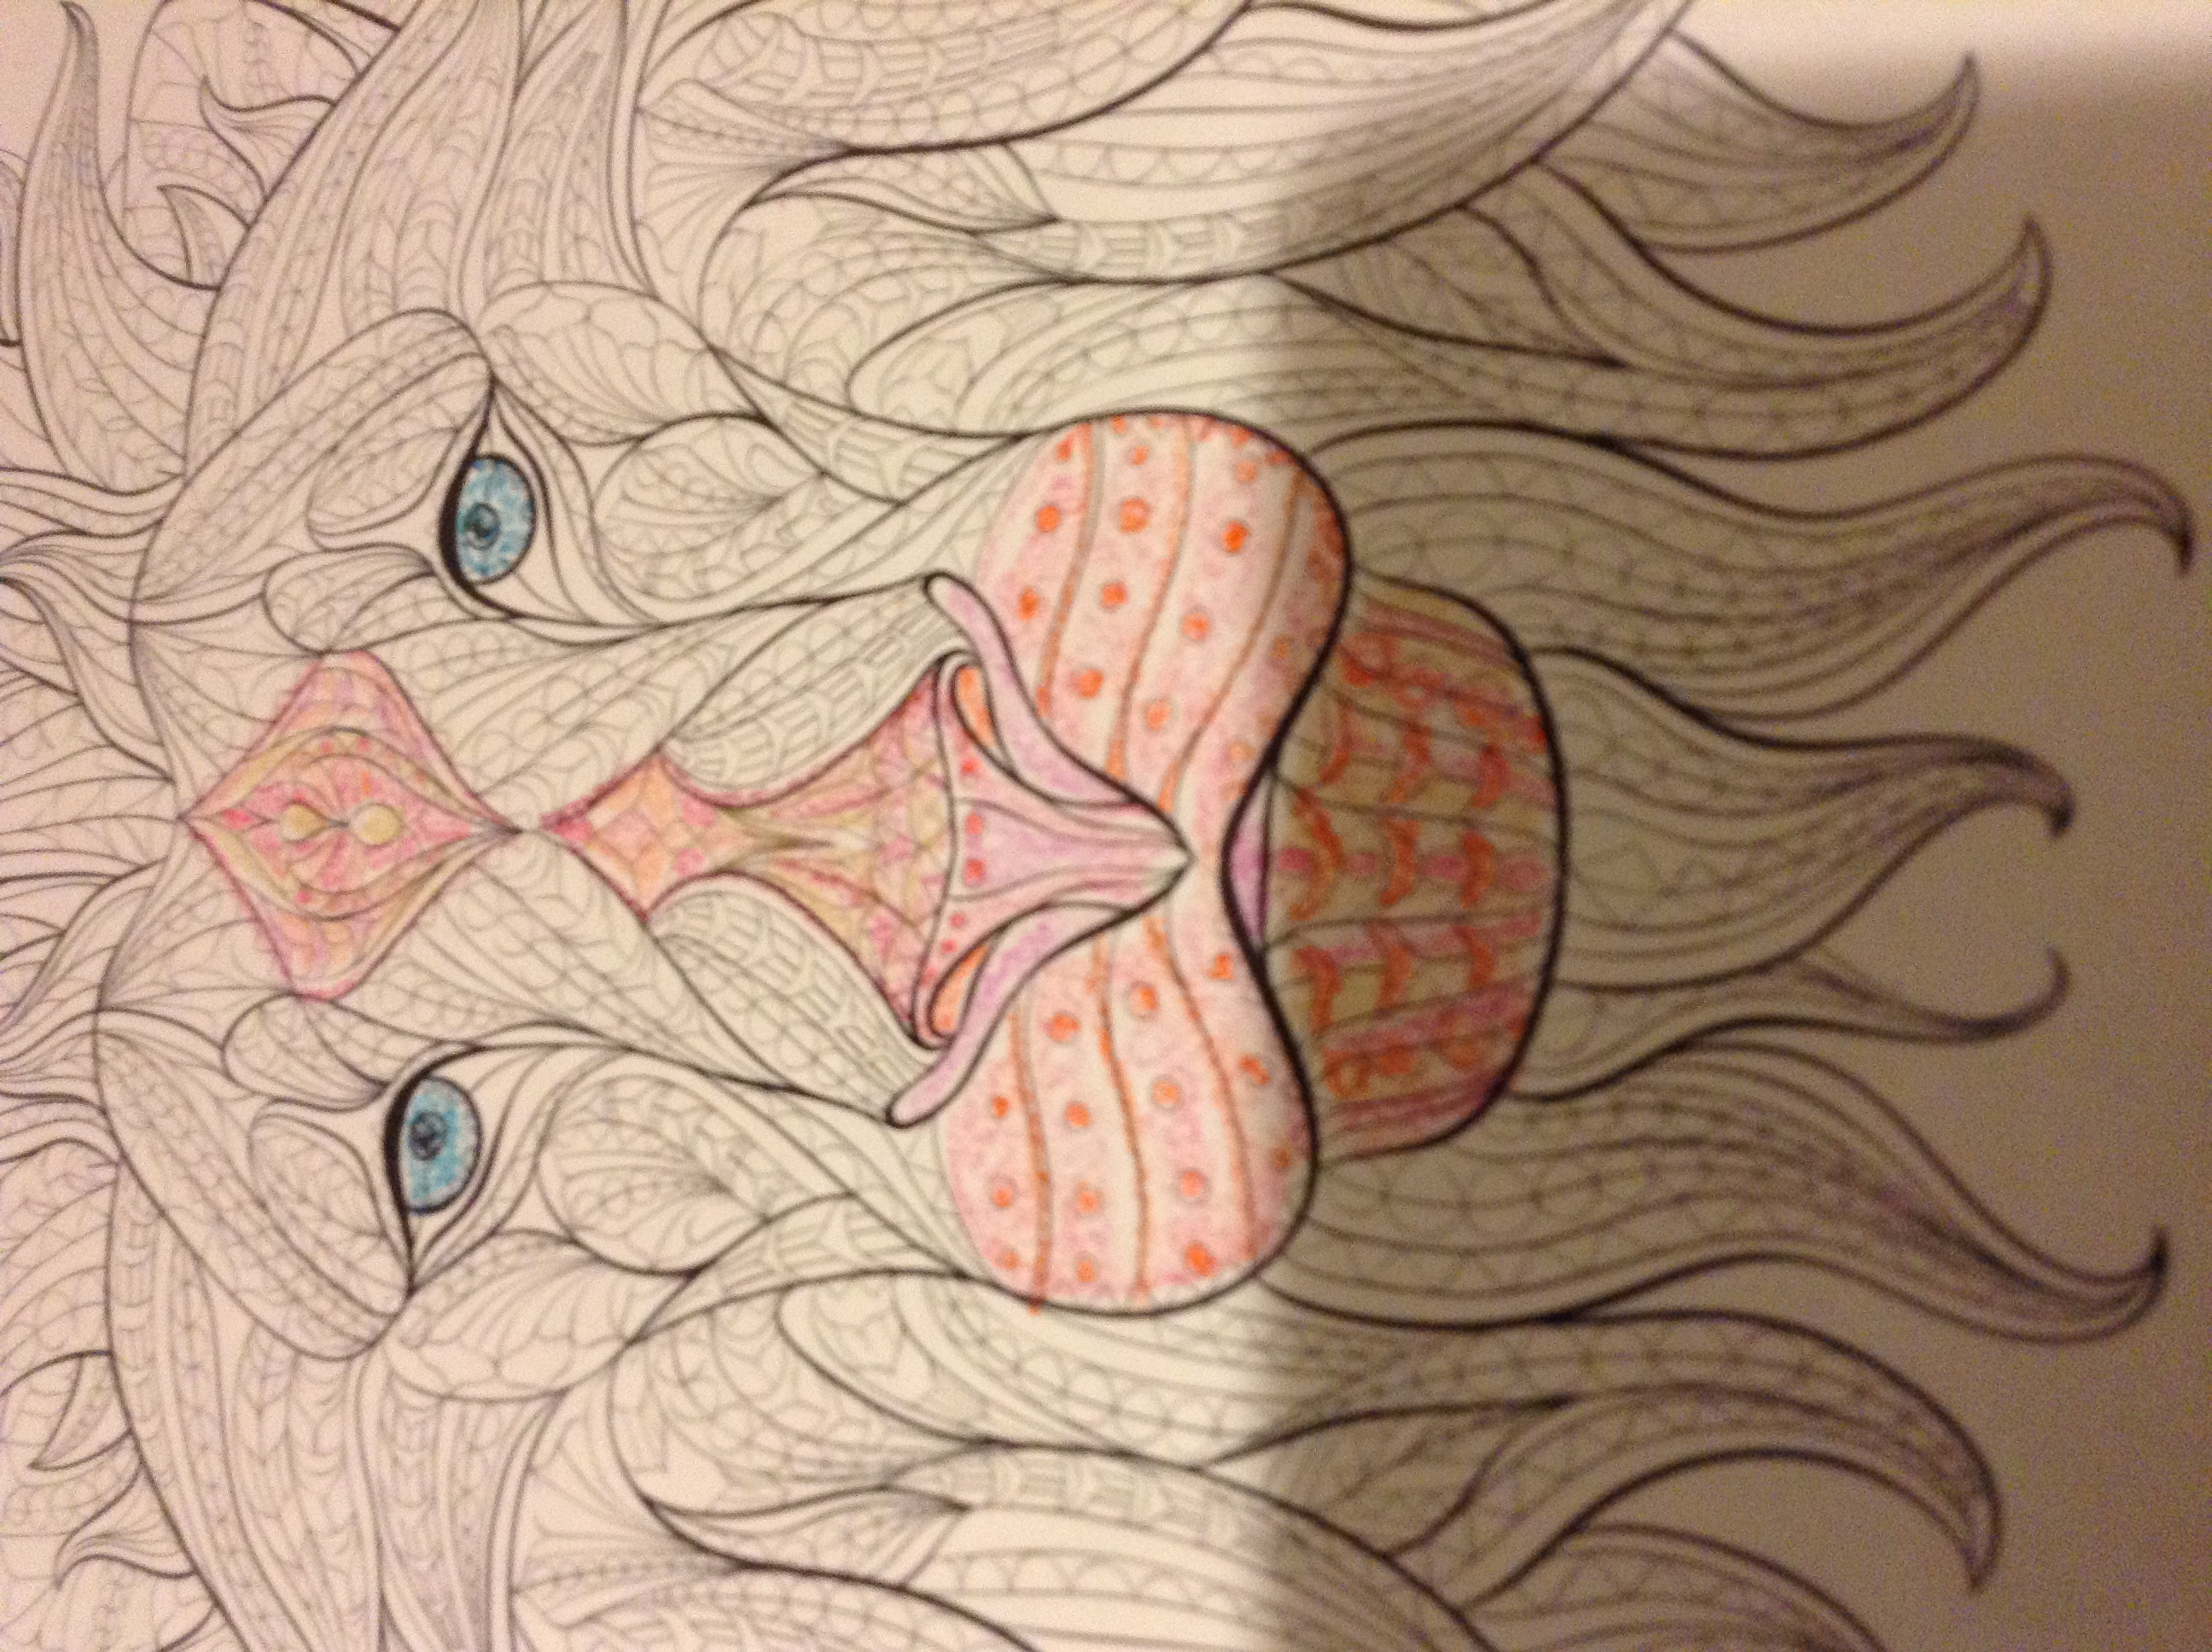 Lion is my coloring